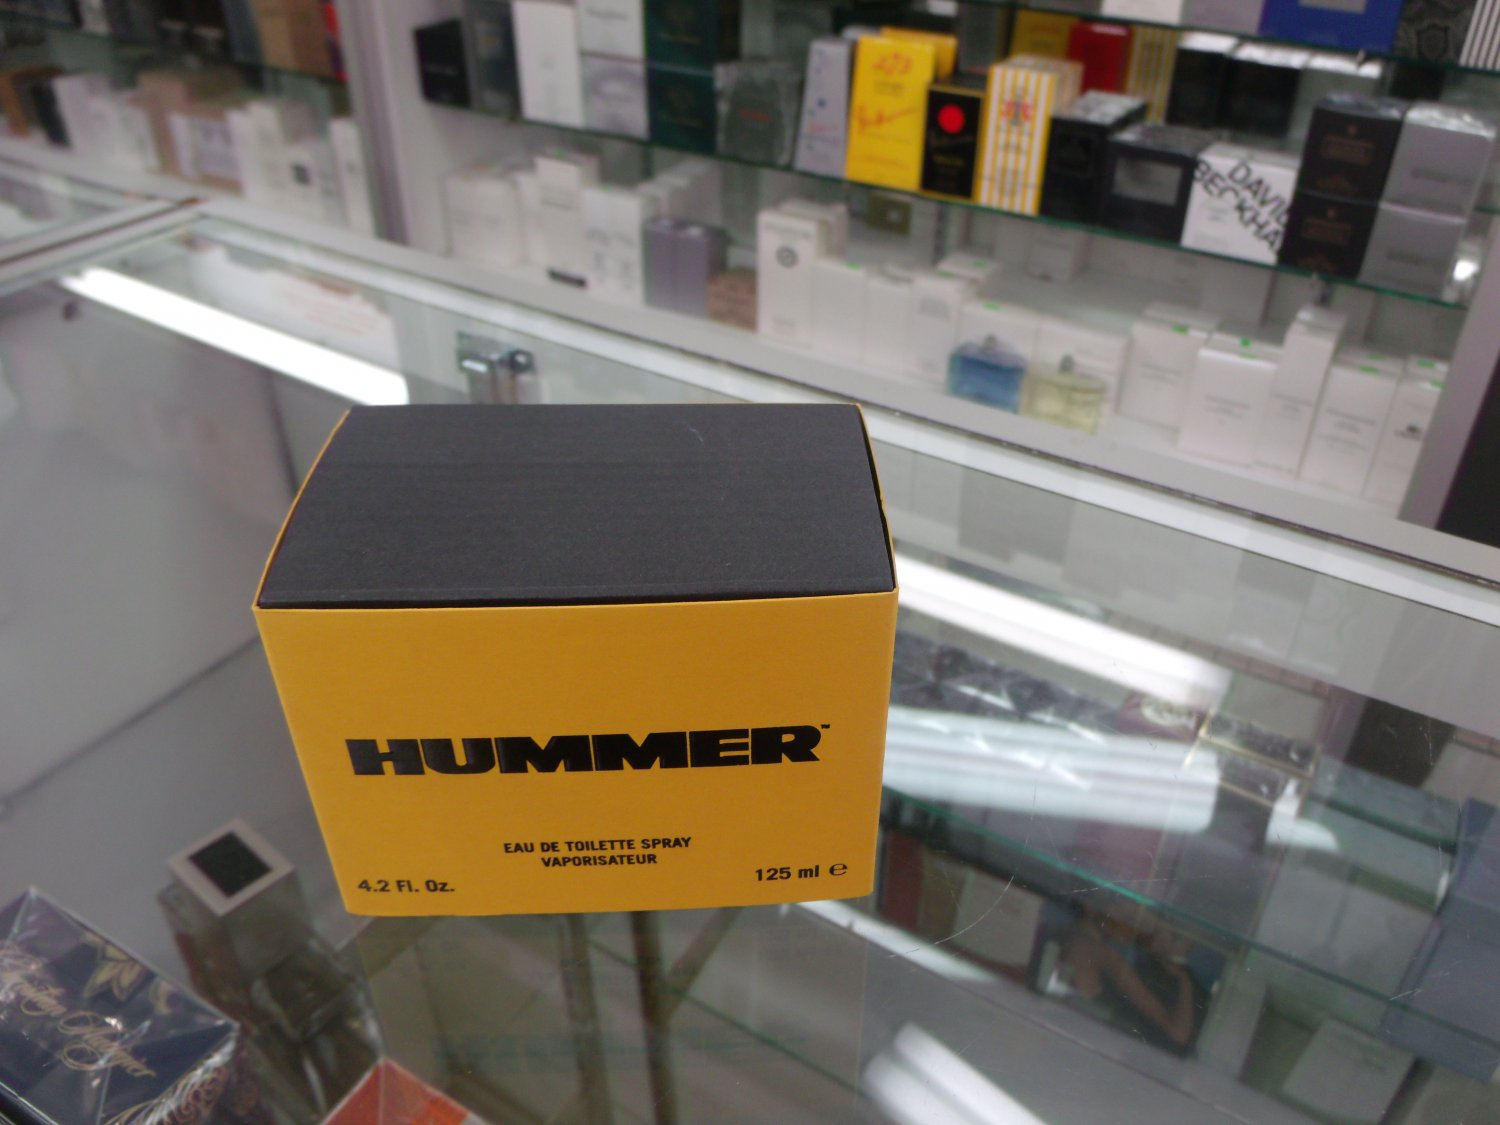 Hummer by Hummer 4.2 Fl.Oz EDT 125 ml for men Retail  $ 54.00 Our Price $ 34.99 Save 35 %